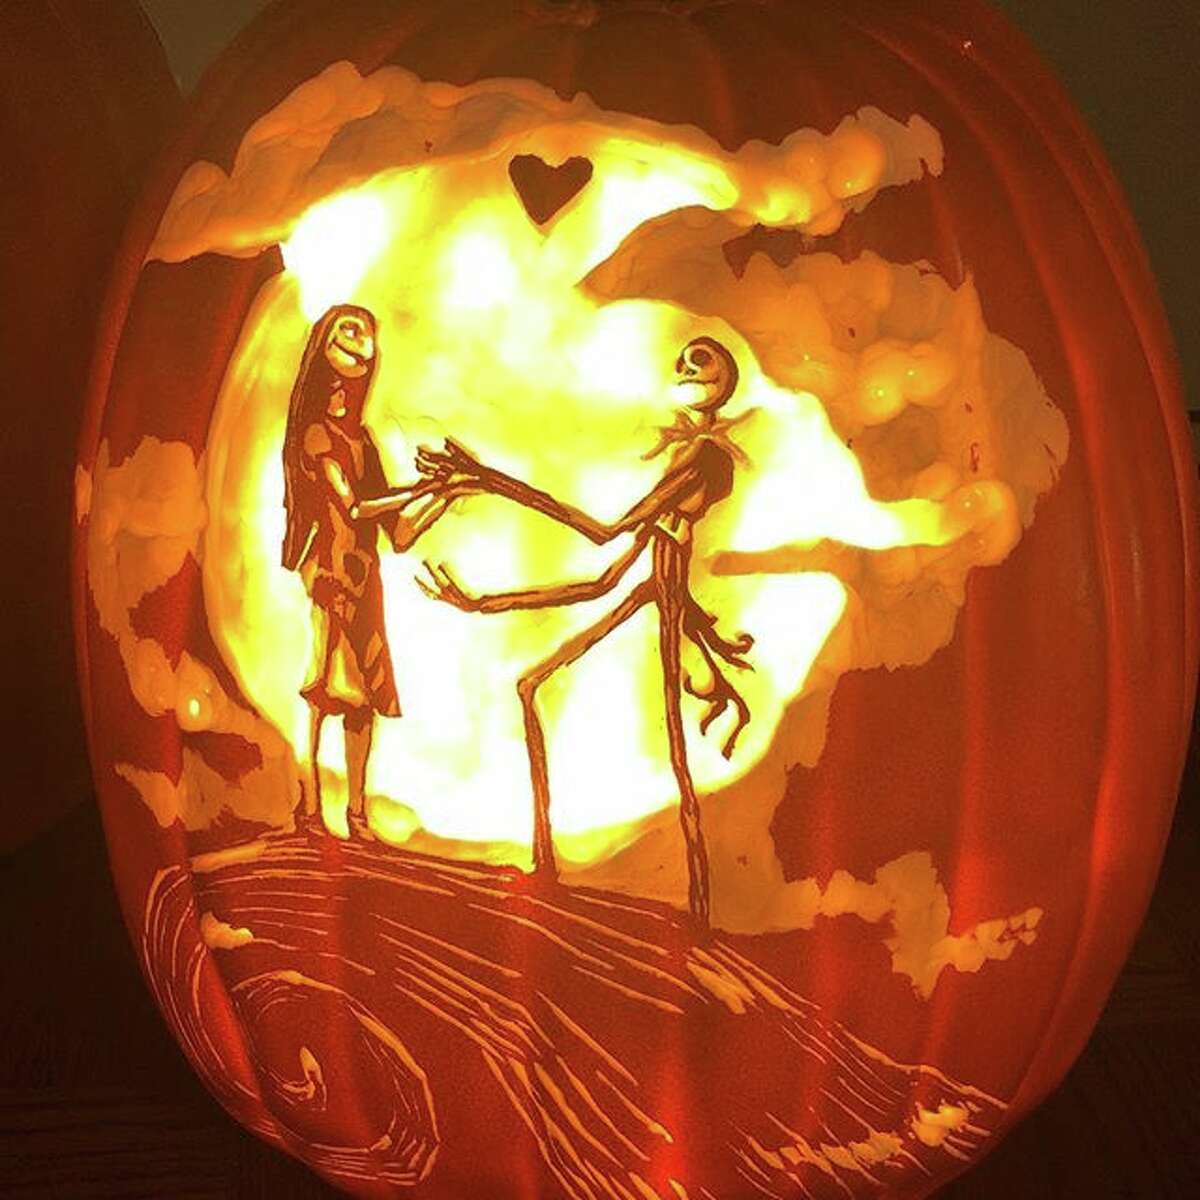 """Courtney Wunder spends as much as eight hours carving complex designs in foam pumpkins for Halloween. This year, she created pumpkins with """"The Nightmare Before Christmas"""" and """"Harry Potter"""" themes, among other pop culture references."""